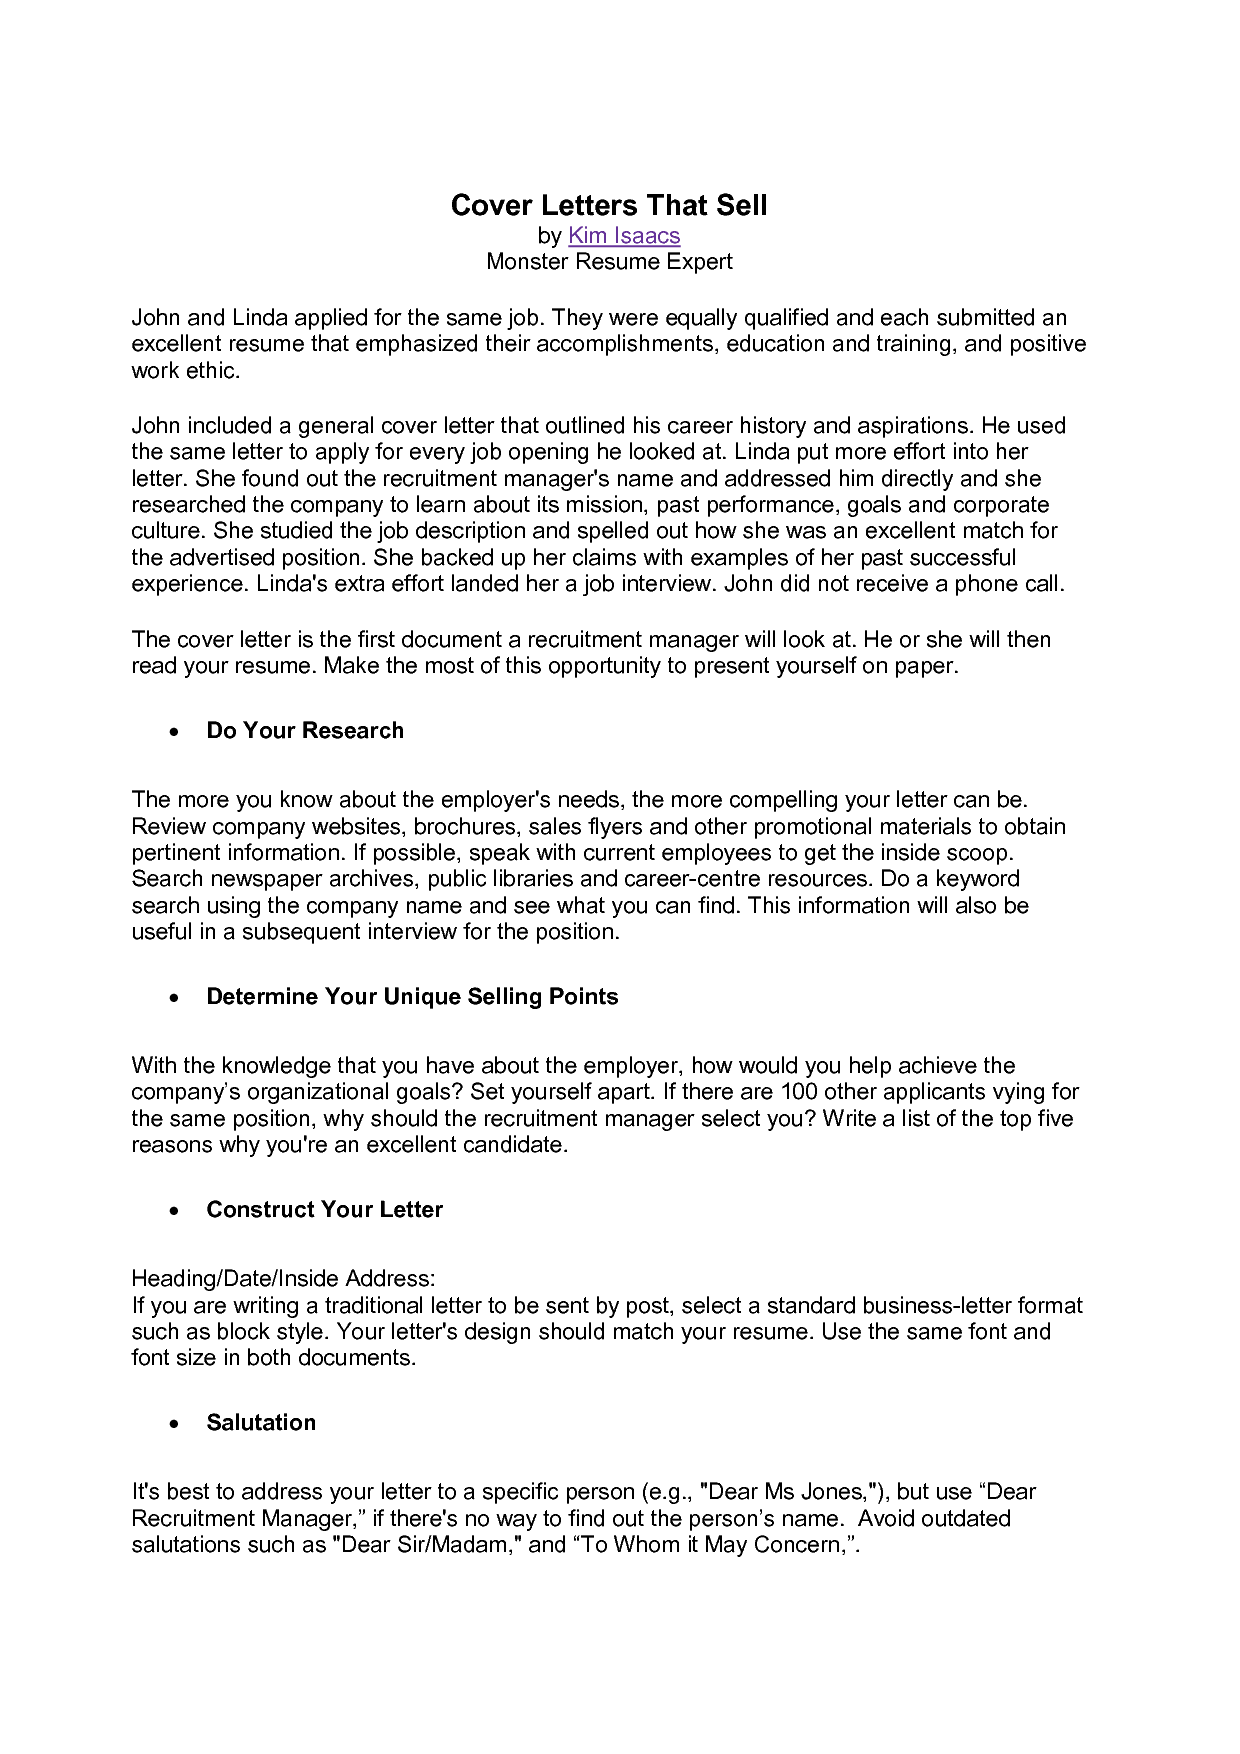 Monster cover letter free download monster cover letter monster explore good cover letter examples and more madrichimfo Images